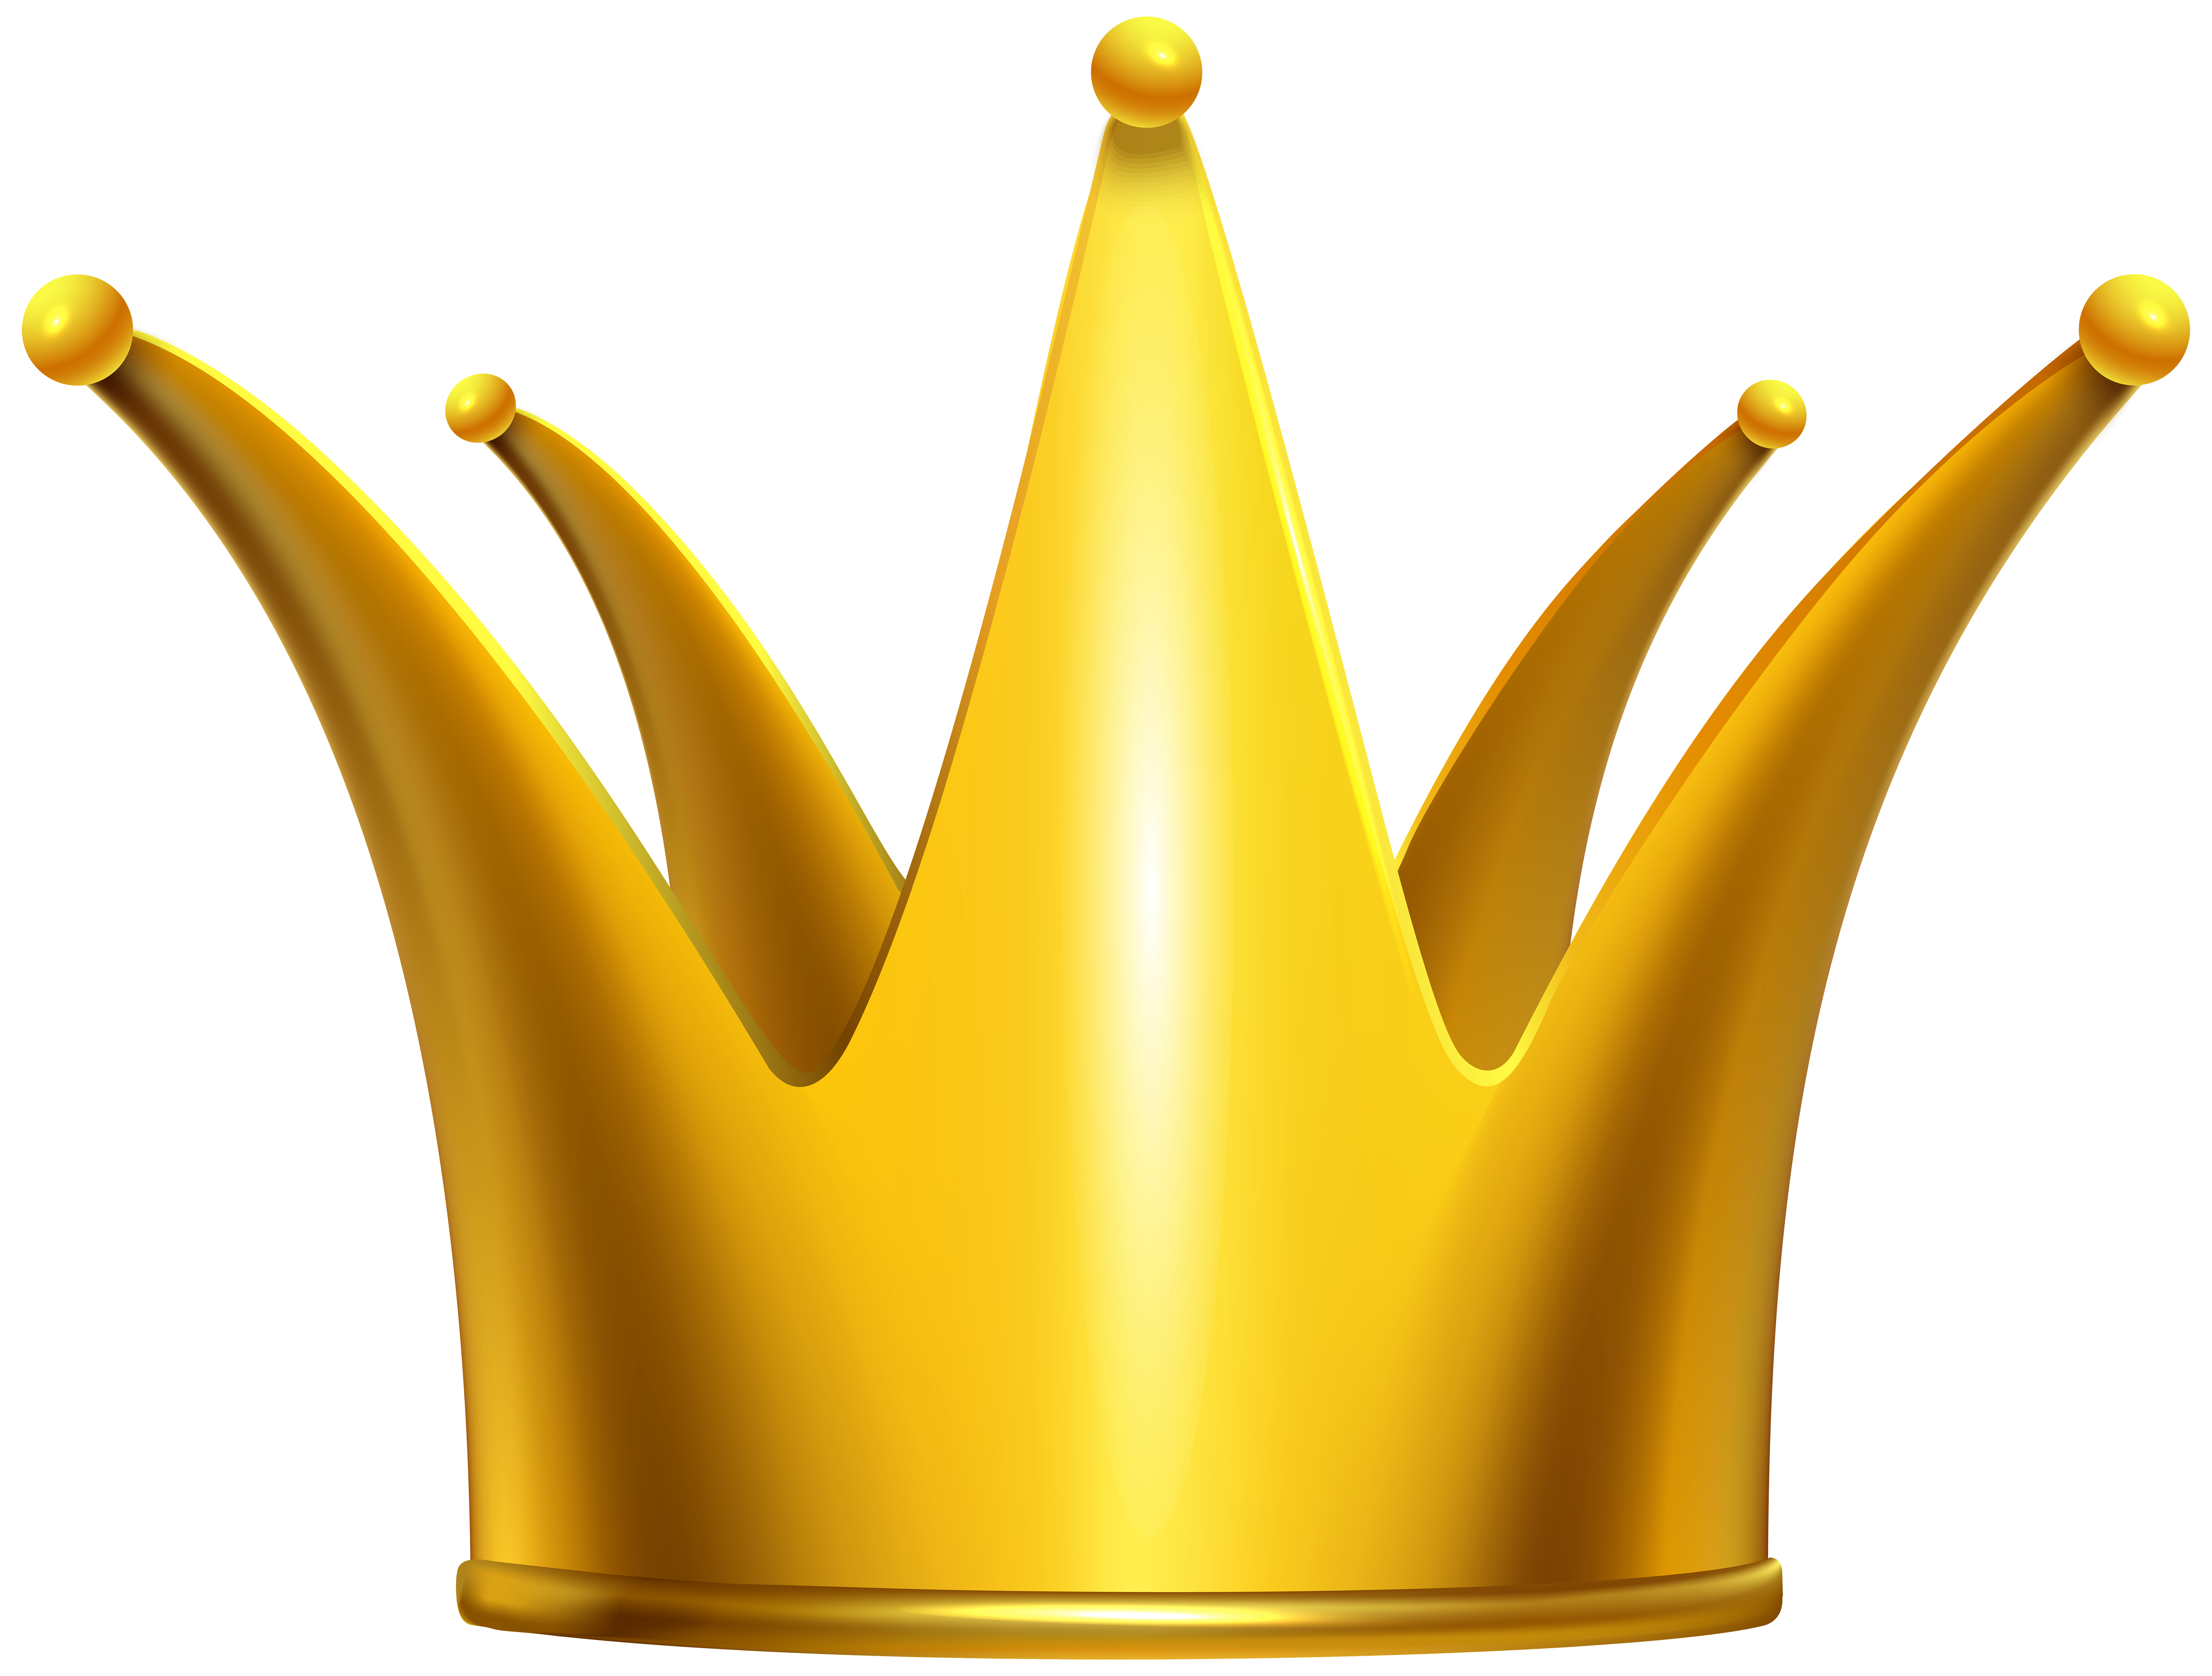 Crown clip art png. Golden image gallery yopriceville